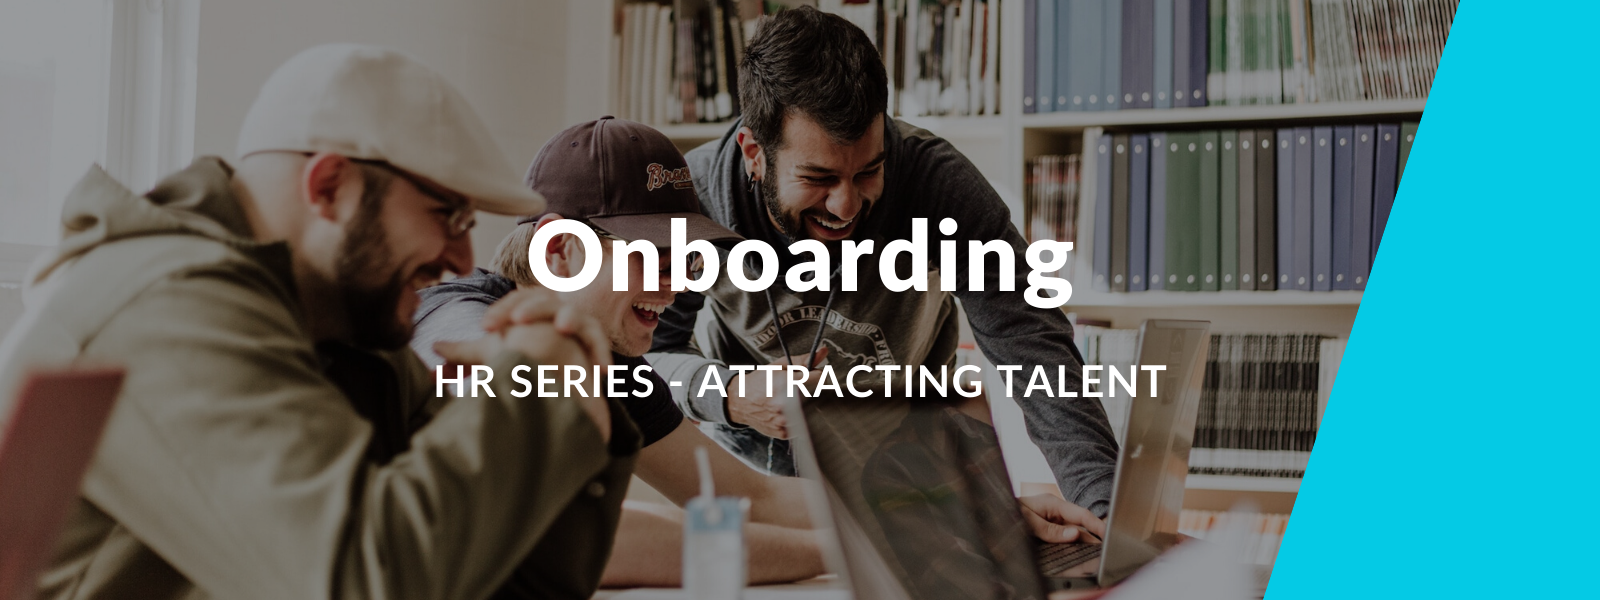 HR Series - Effective onboarding to attract talent